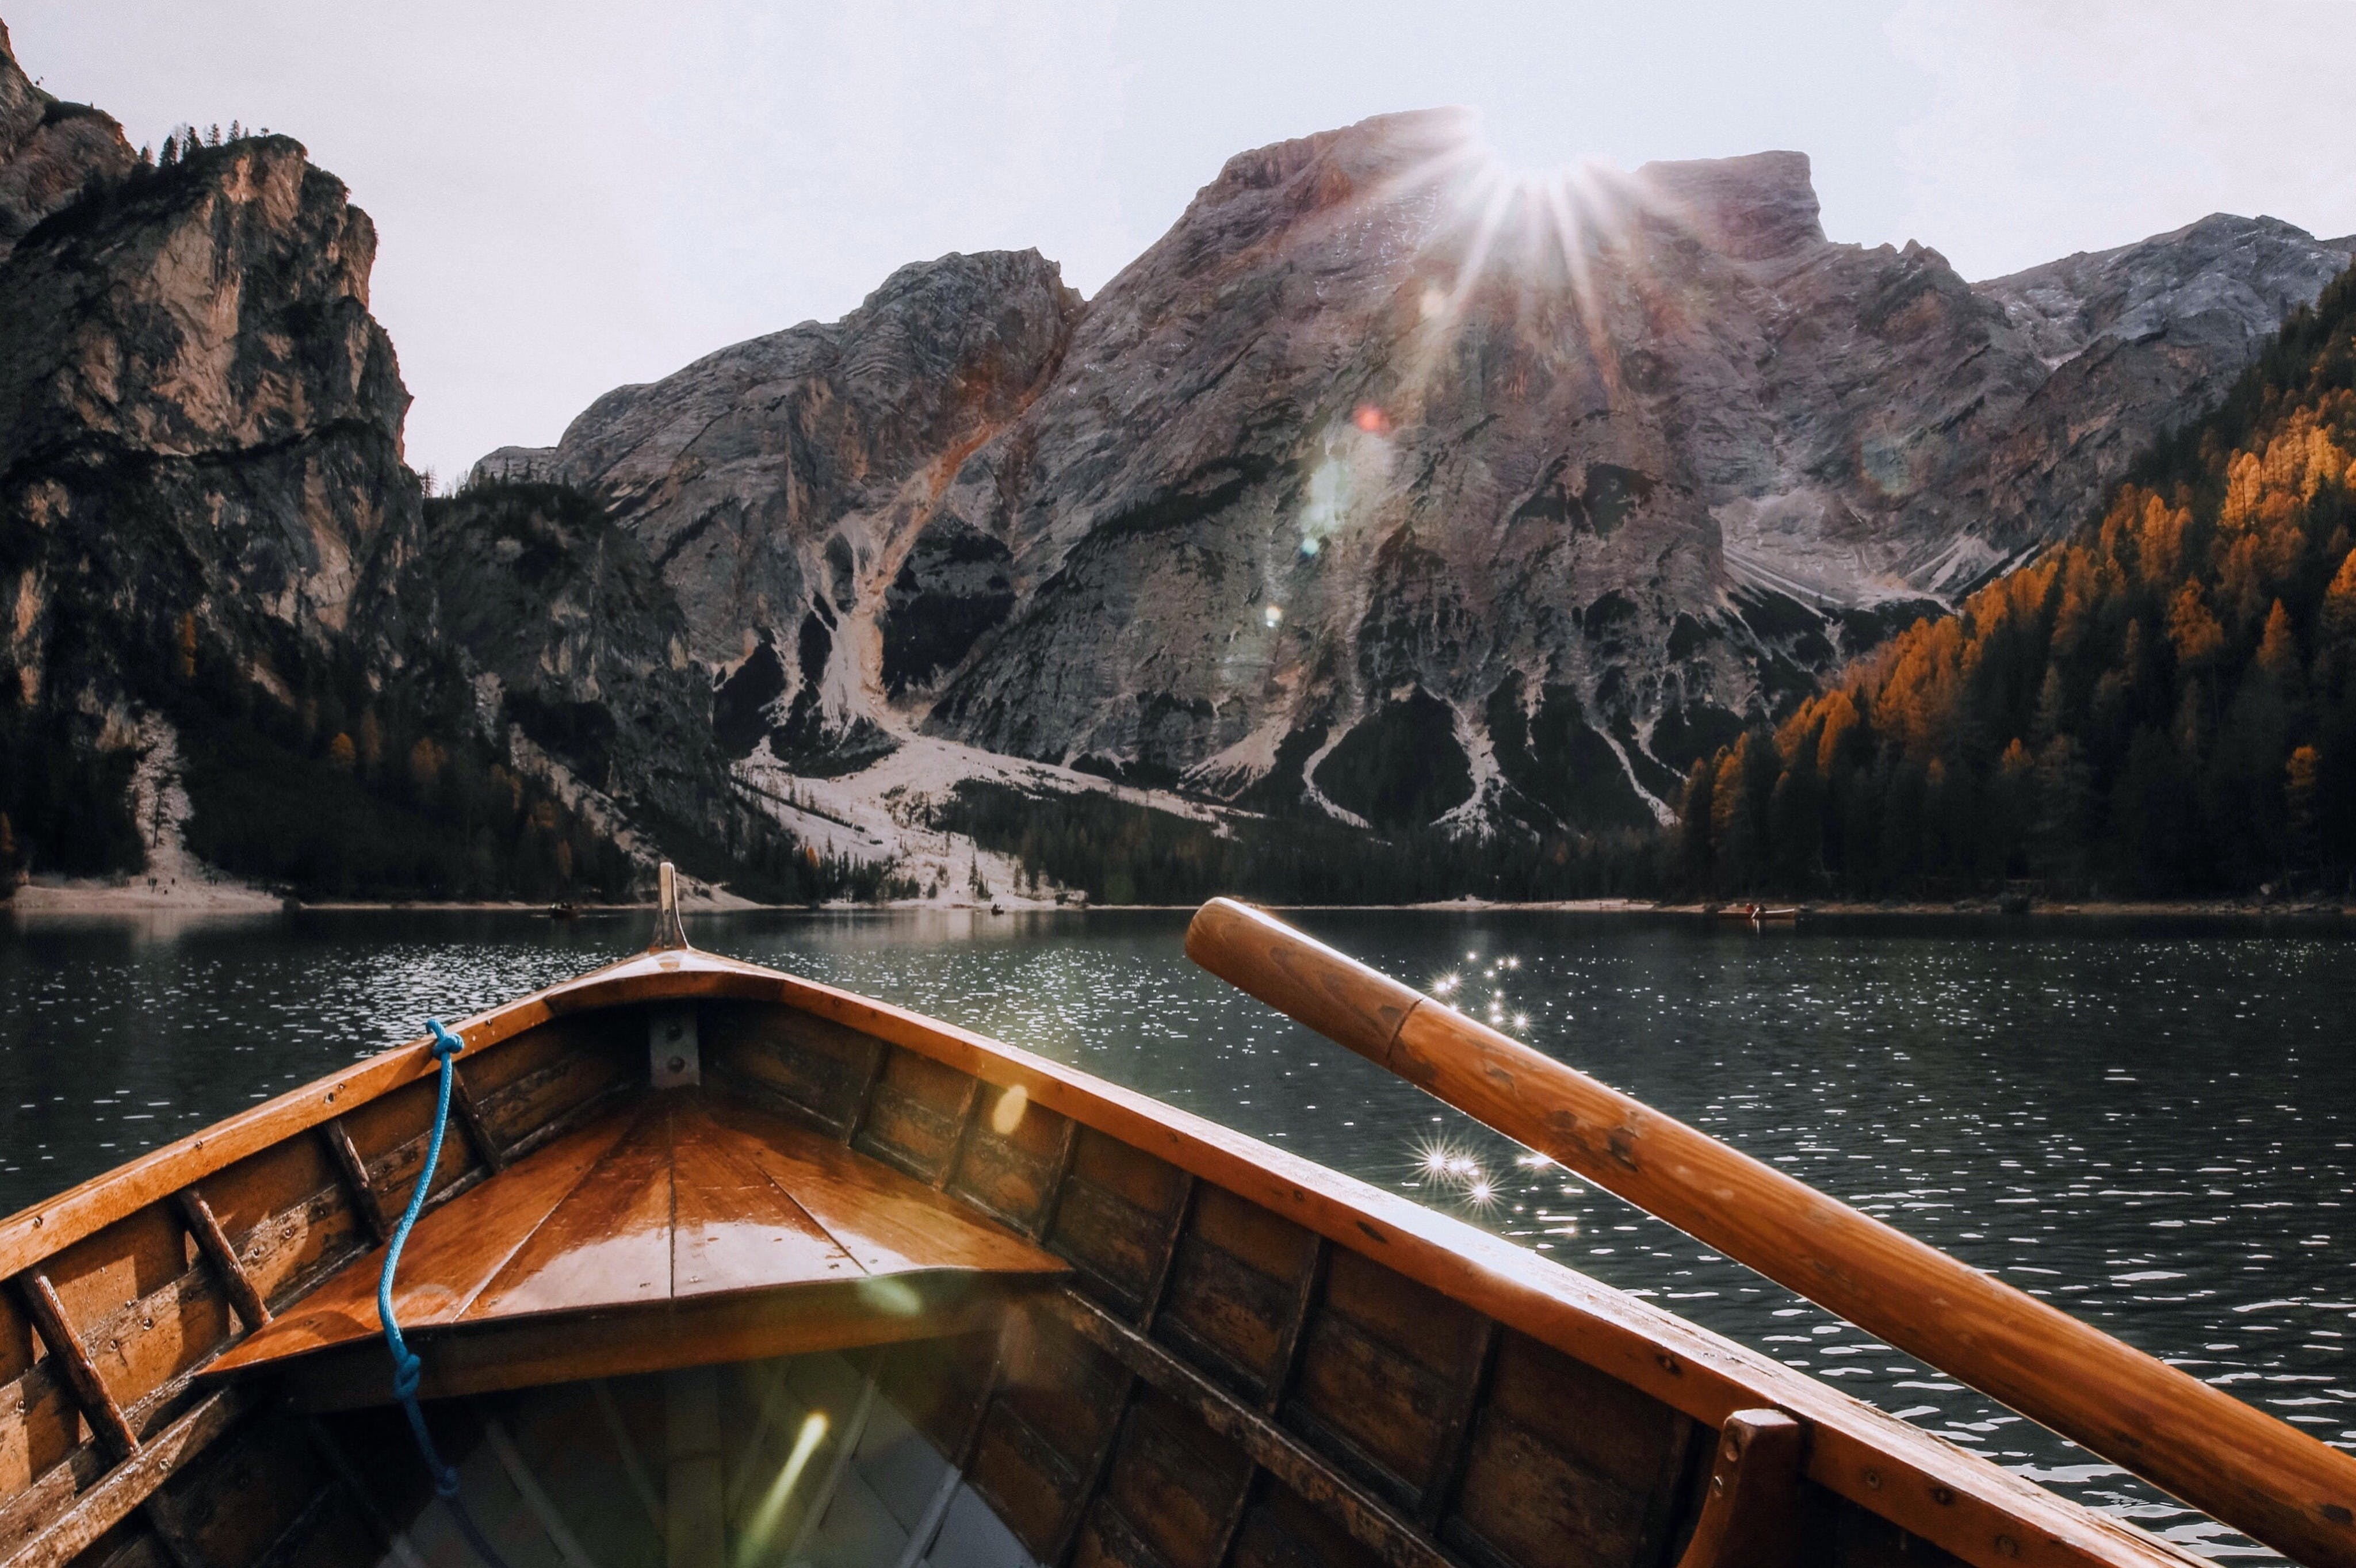 Brown Canoe in the Body of Water Near Mountain